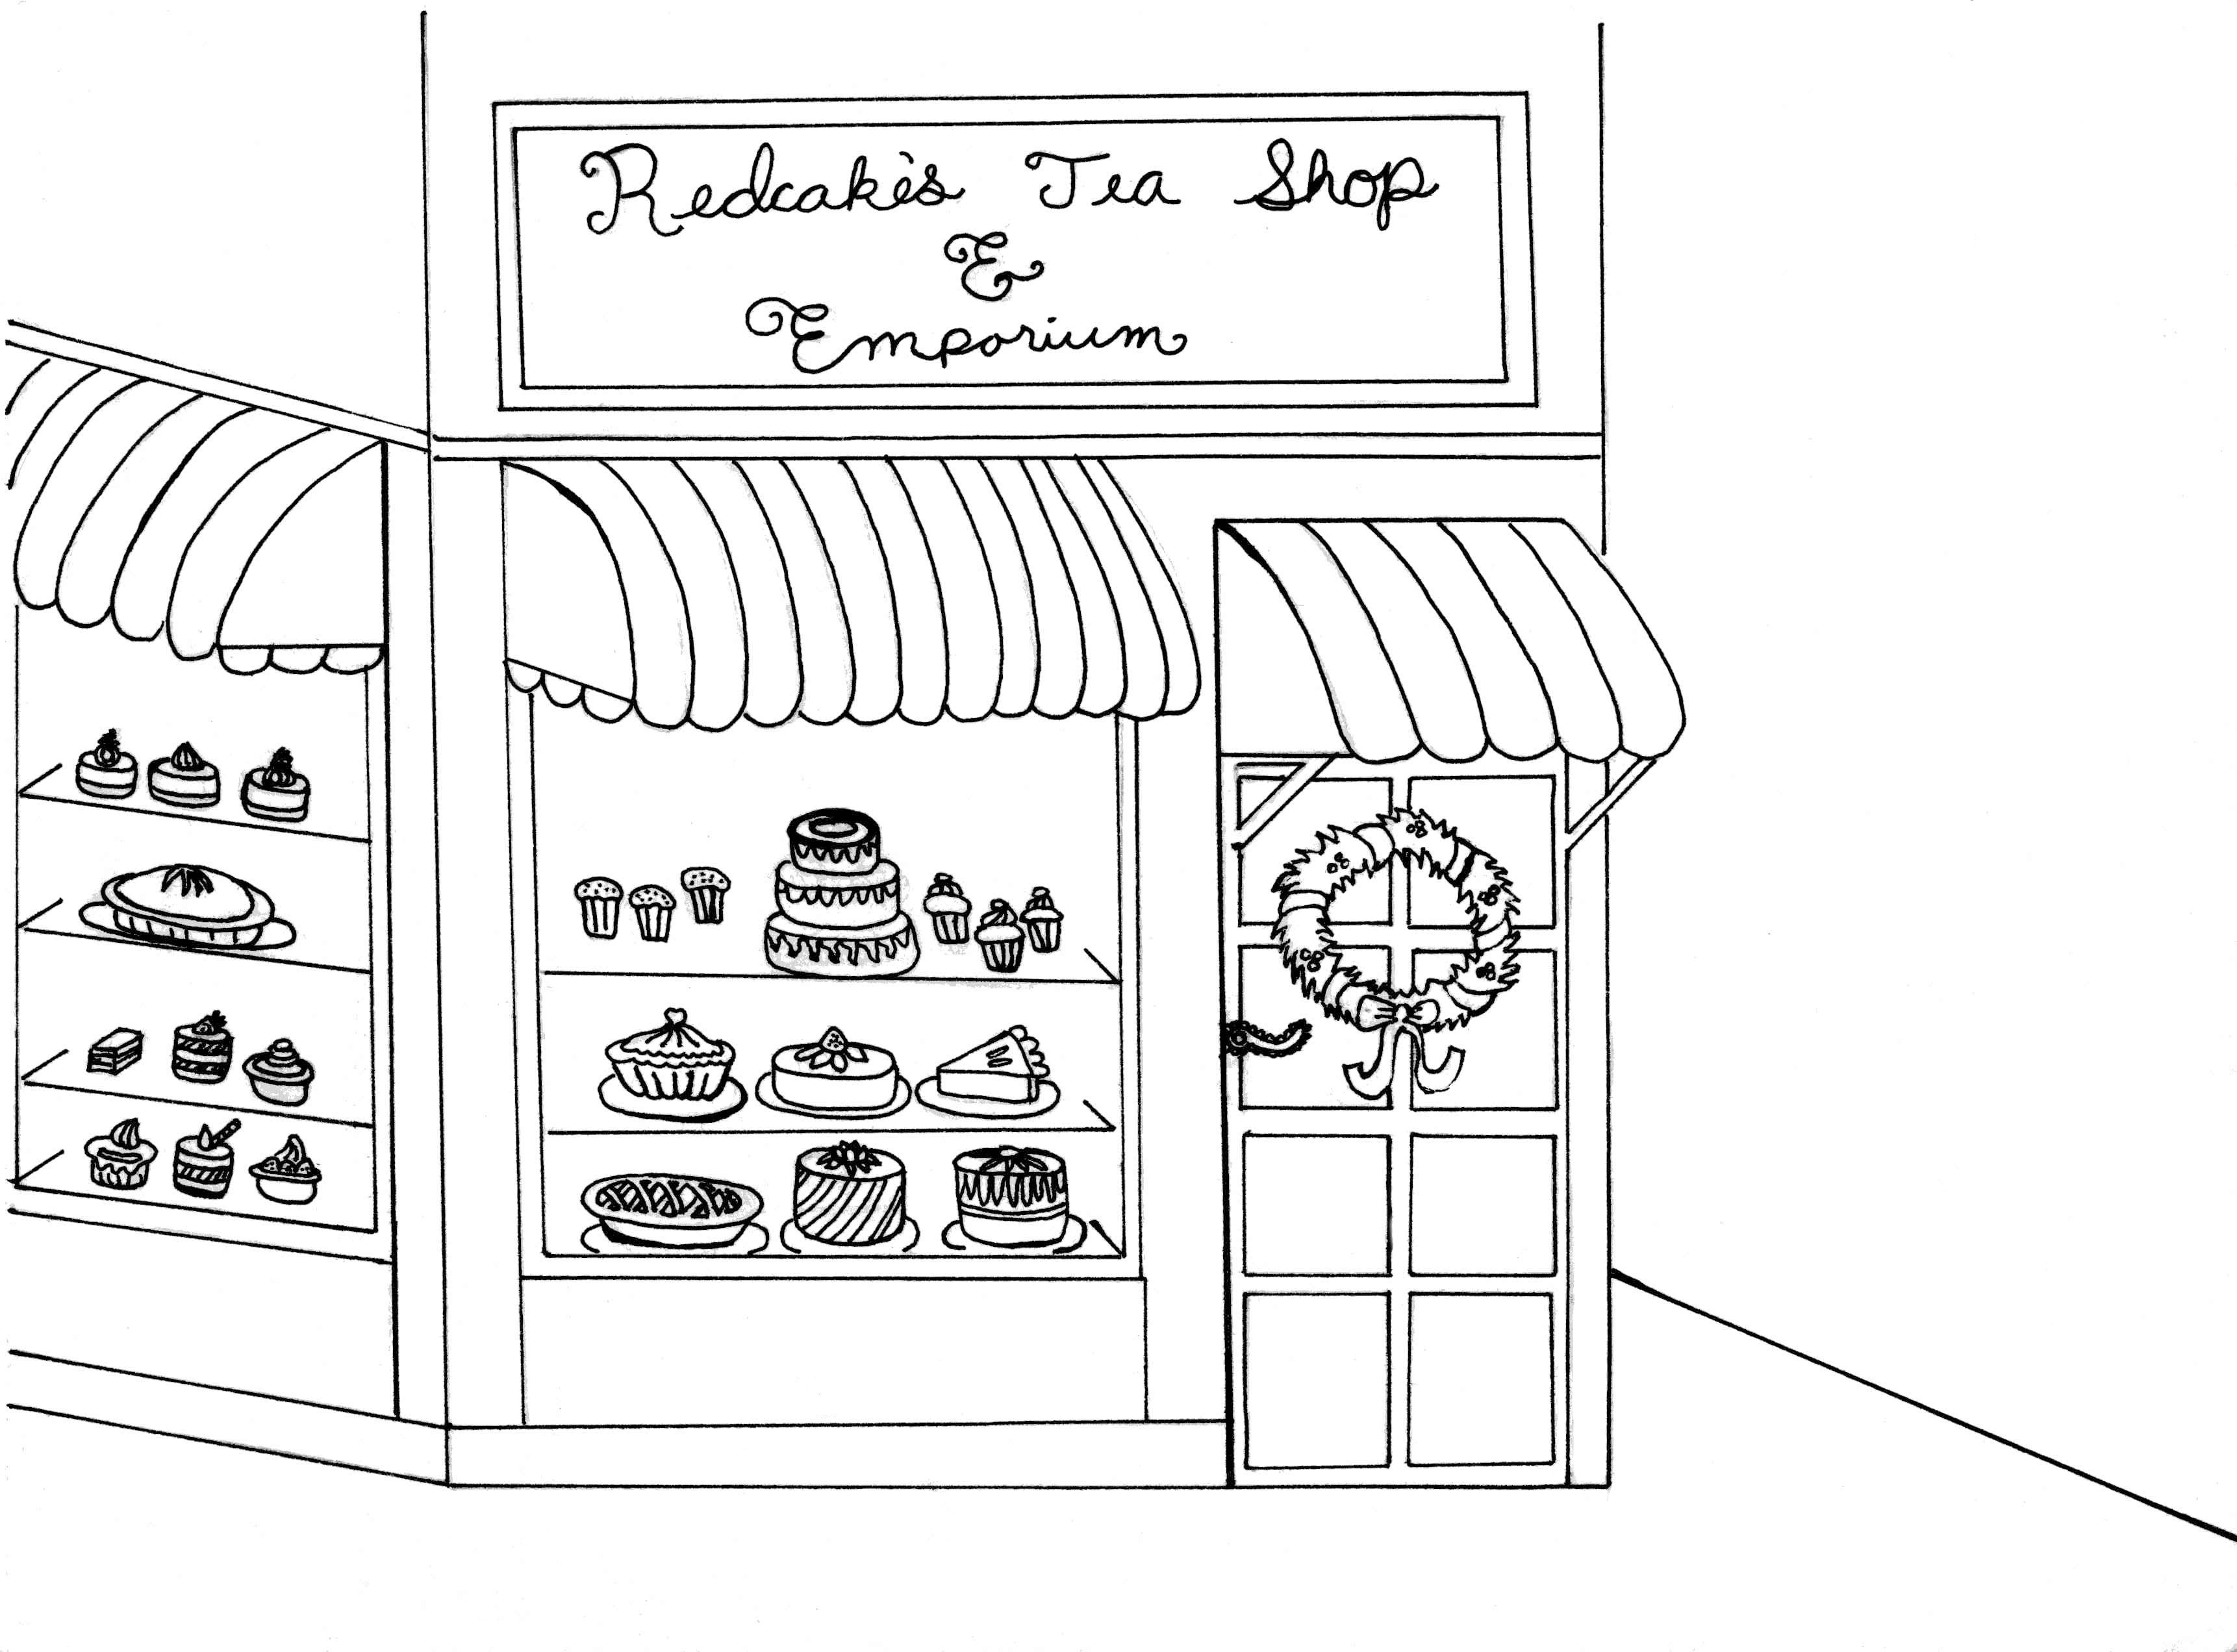 Redcakes Tea Shop 1880s Coloring Page Art By Stand In Honor Of The